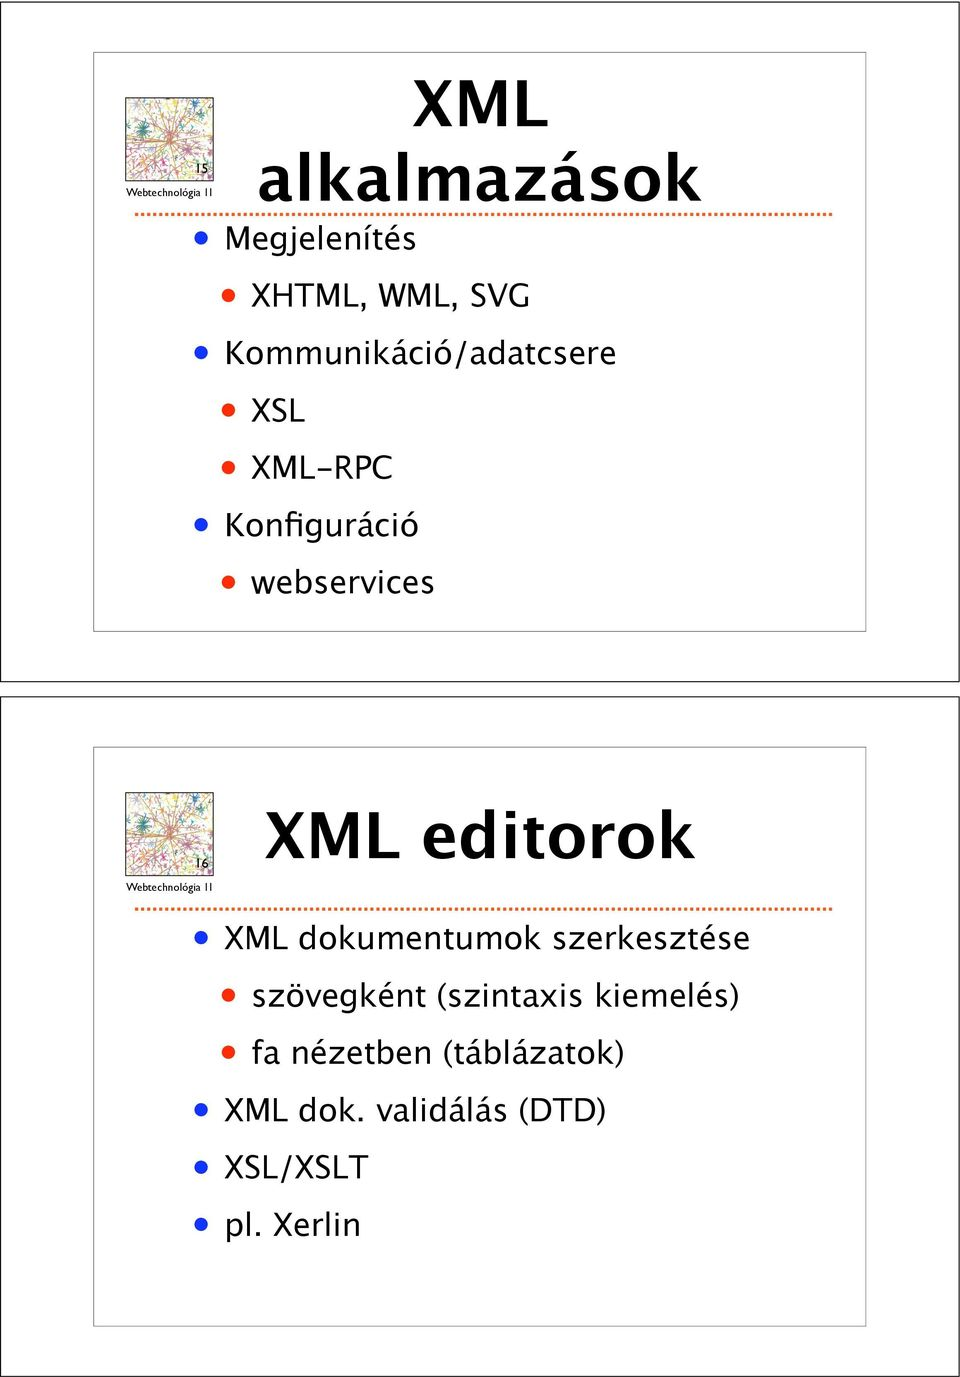 INTERNET,mapped on the opposite page, is a scalefree network in that 16 XML editorok XML